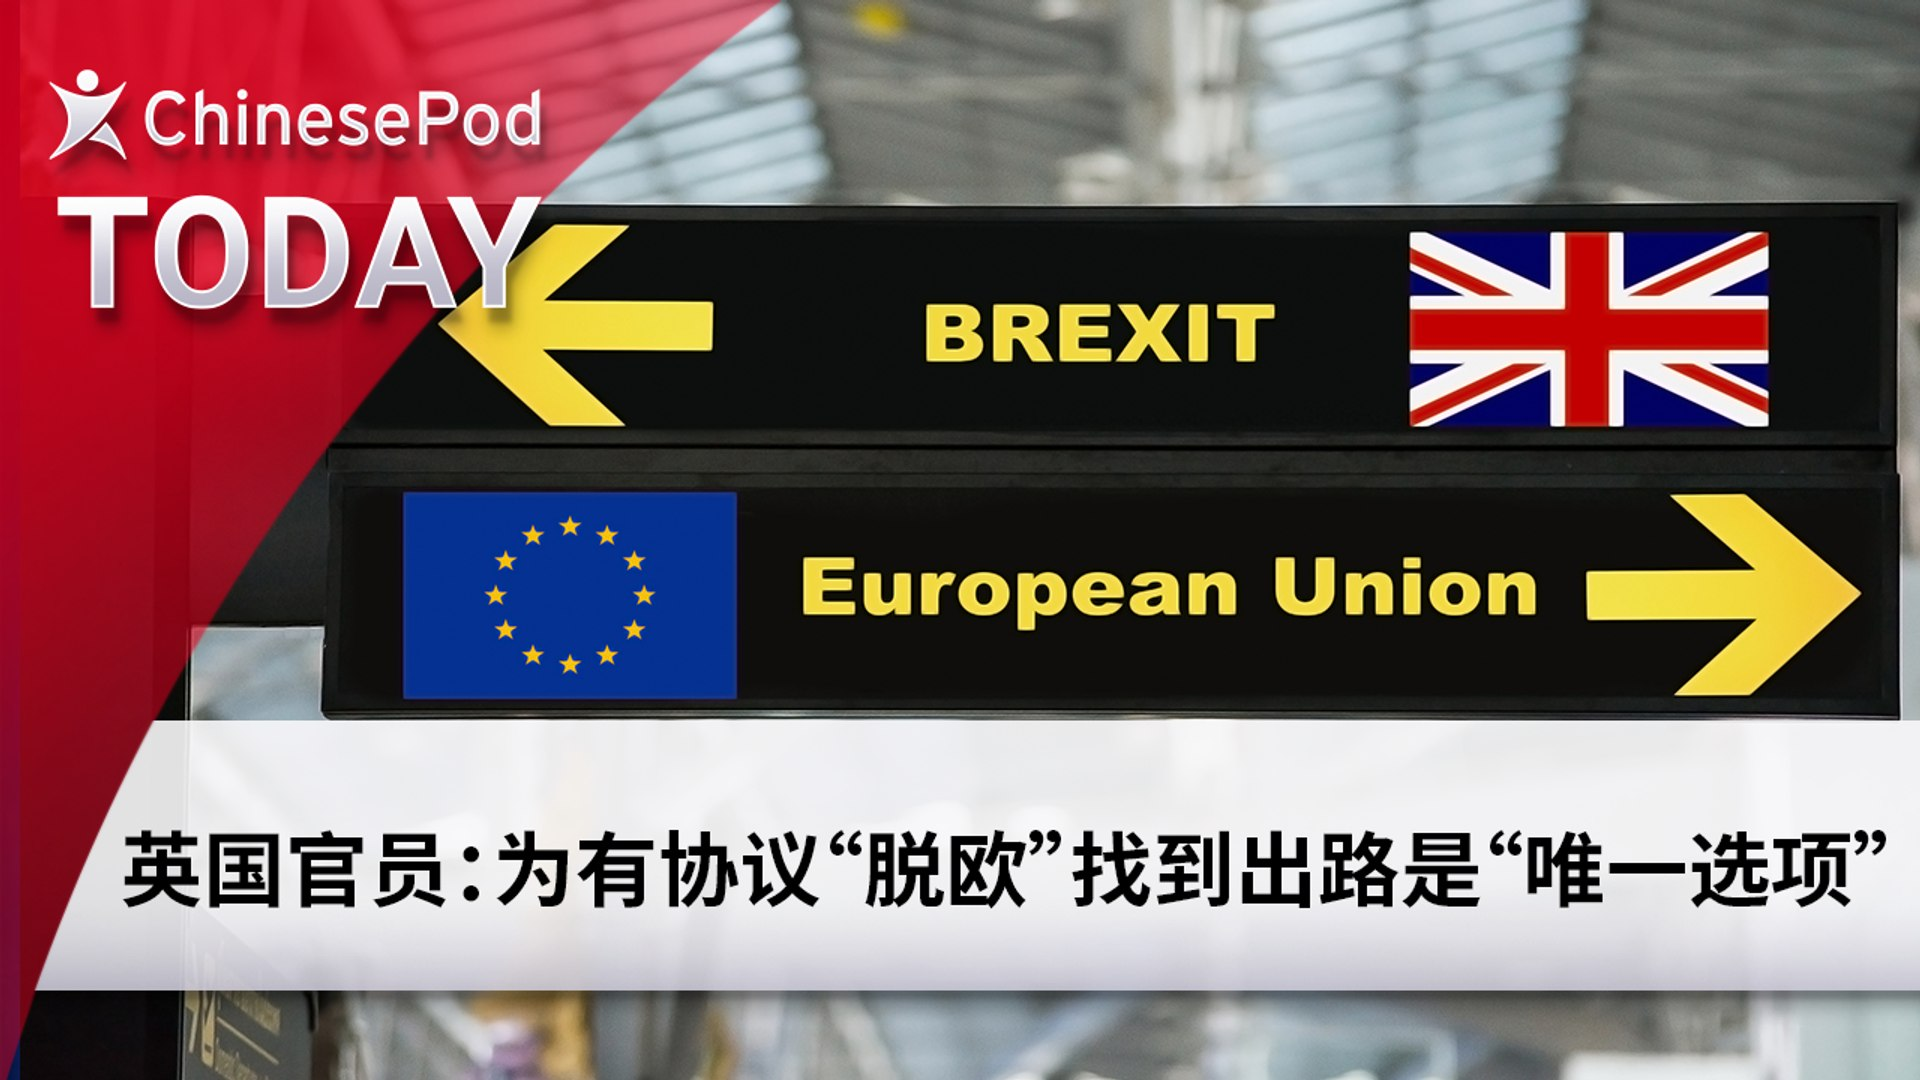 ChinesePod Today: The ''Only Option'' for Brexit (simp. characters)